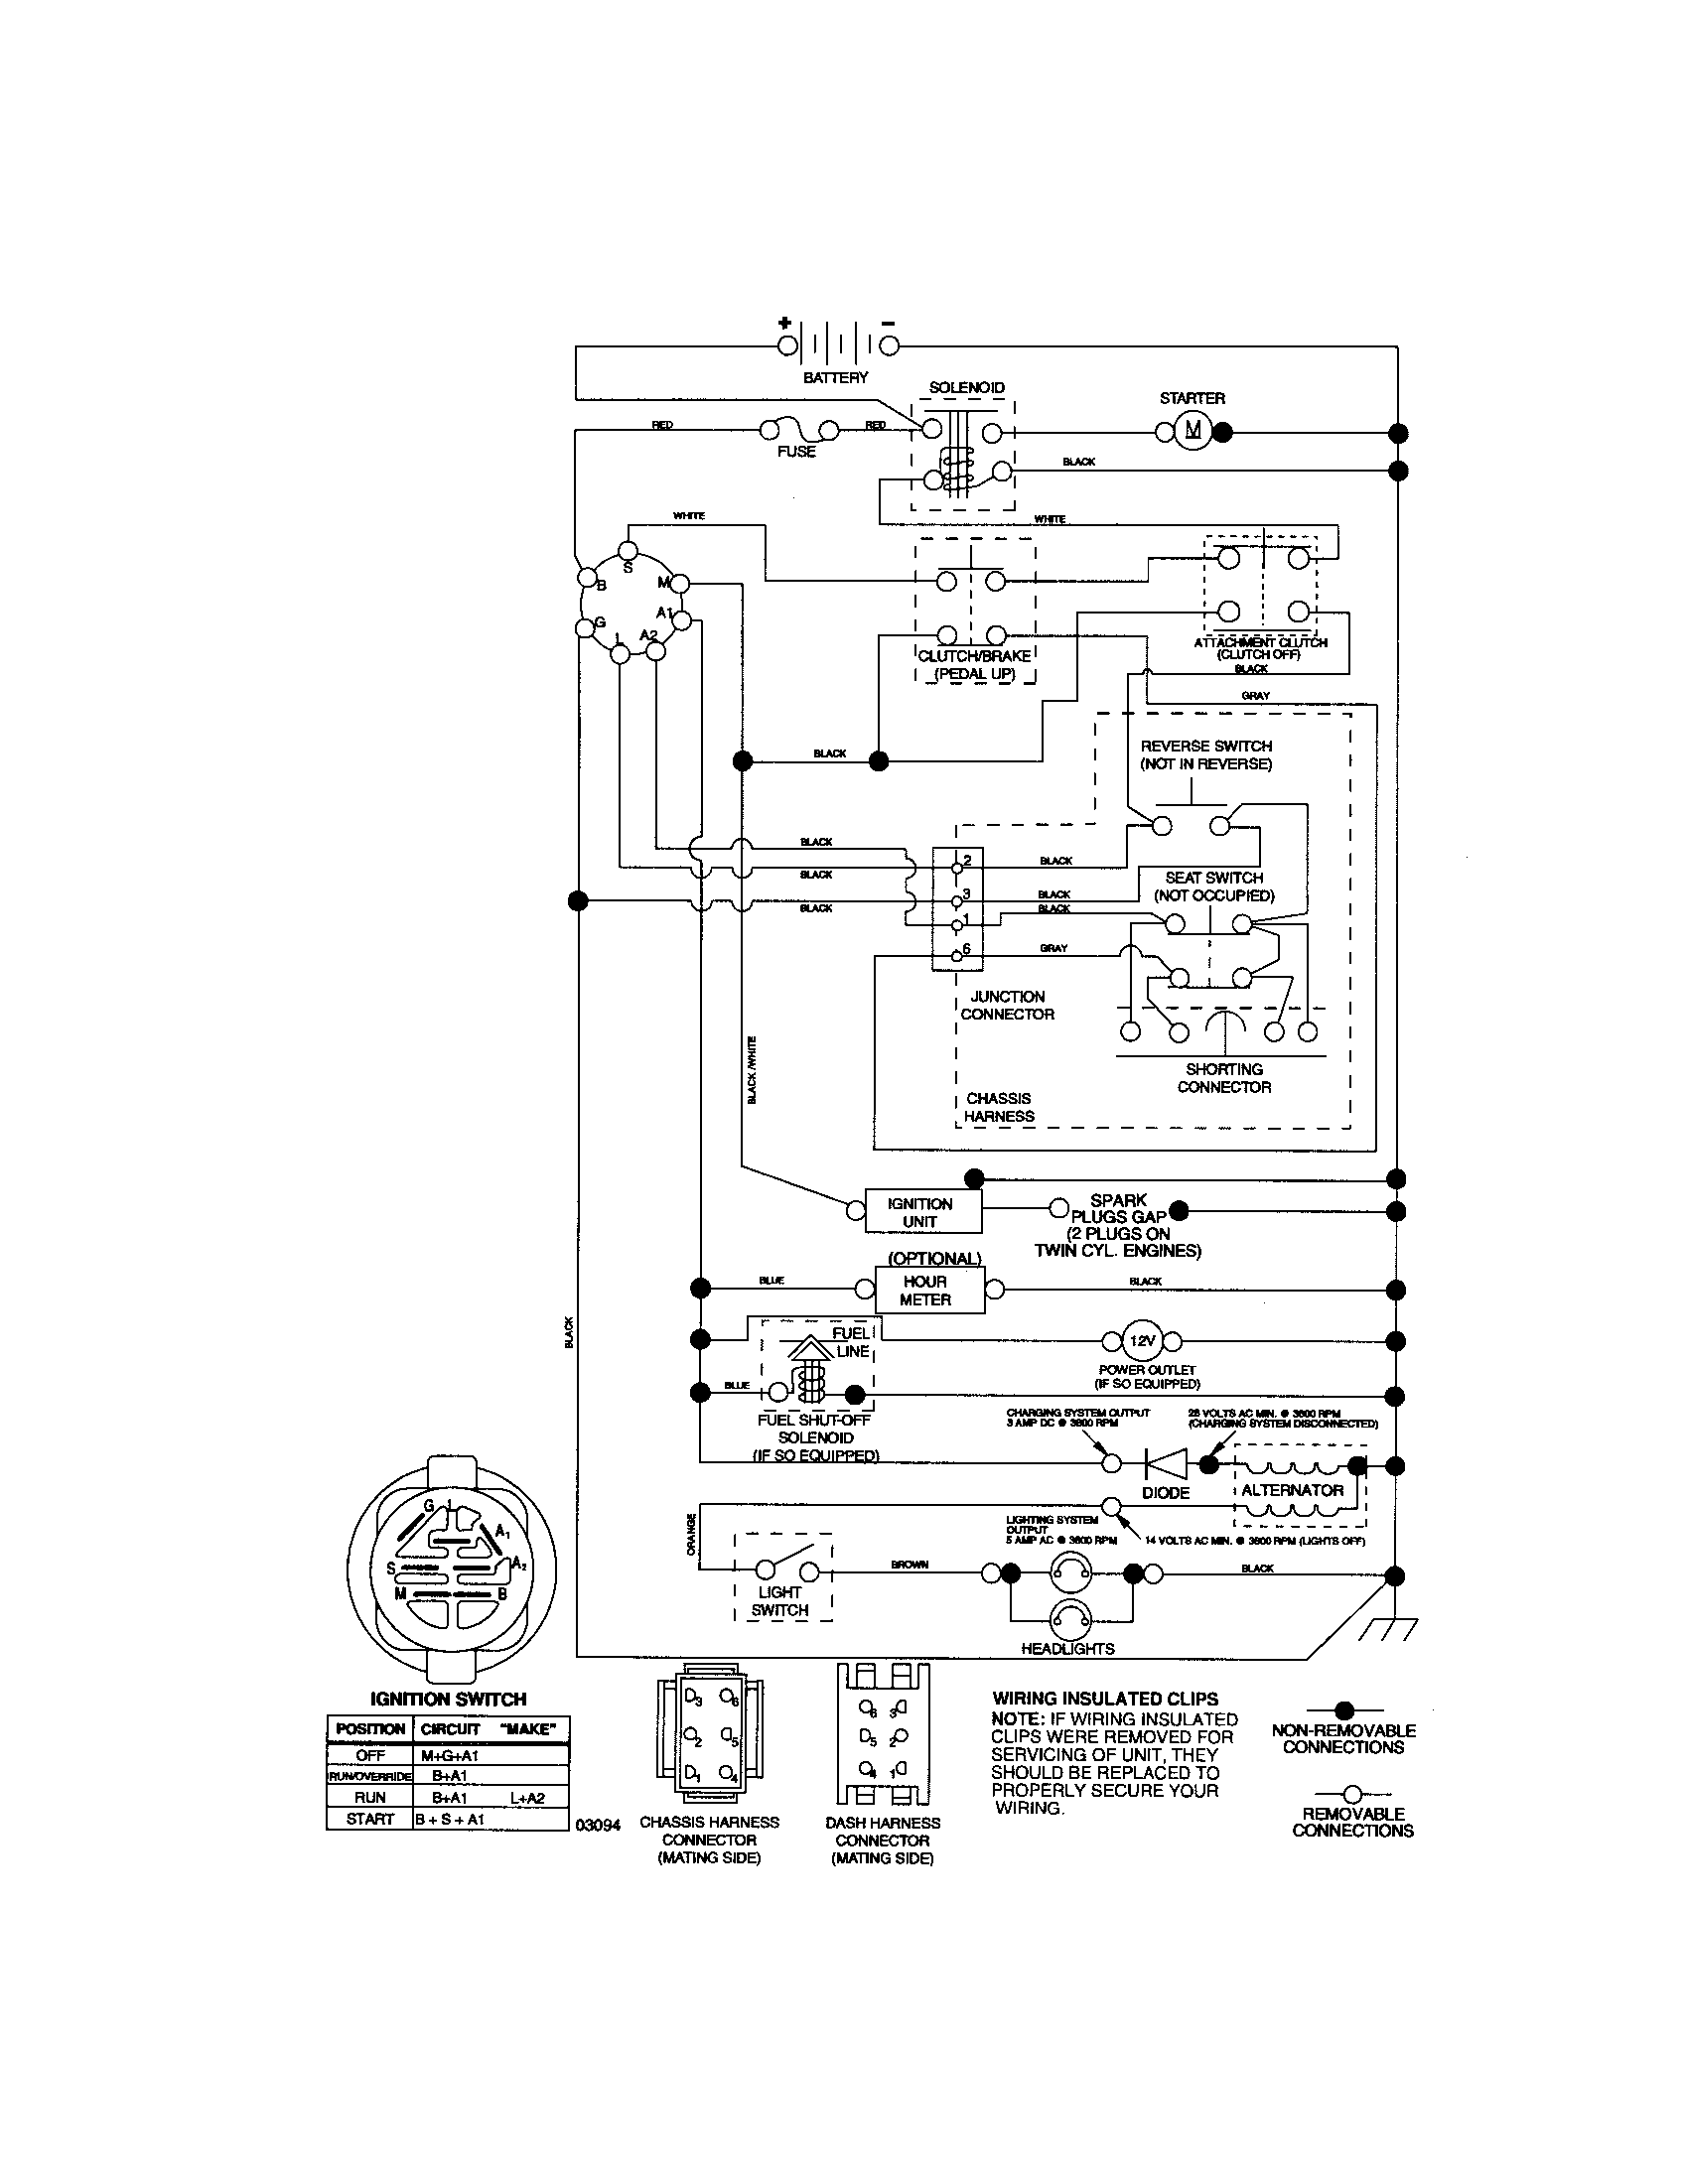 Swisher 60 Mower Ignition Switch Wiring Diagram